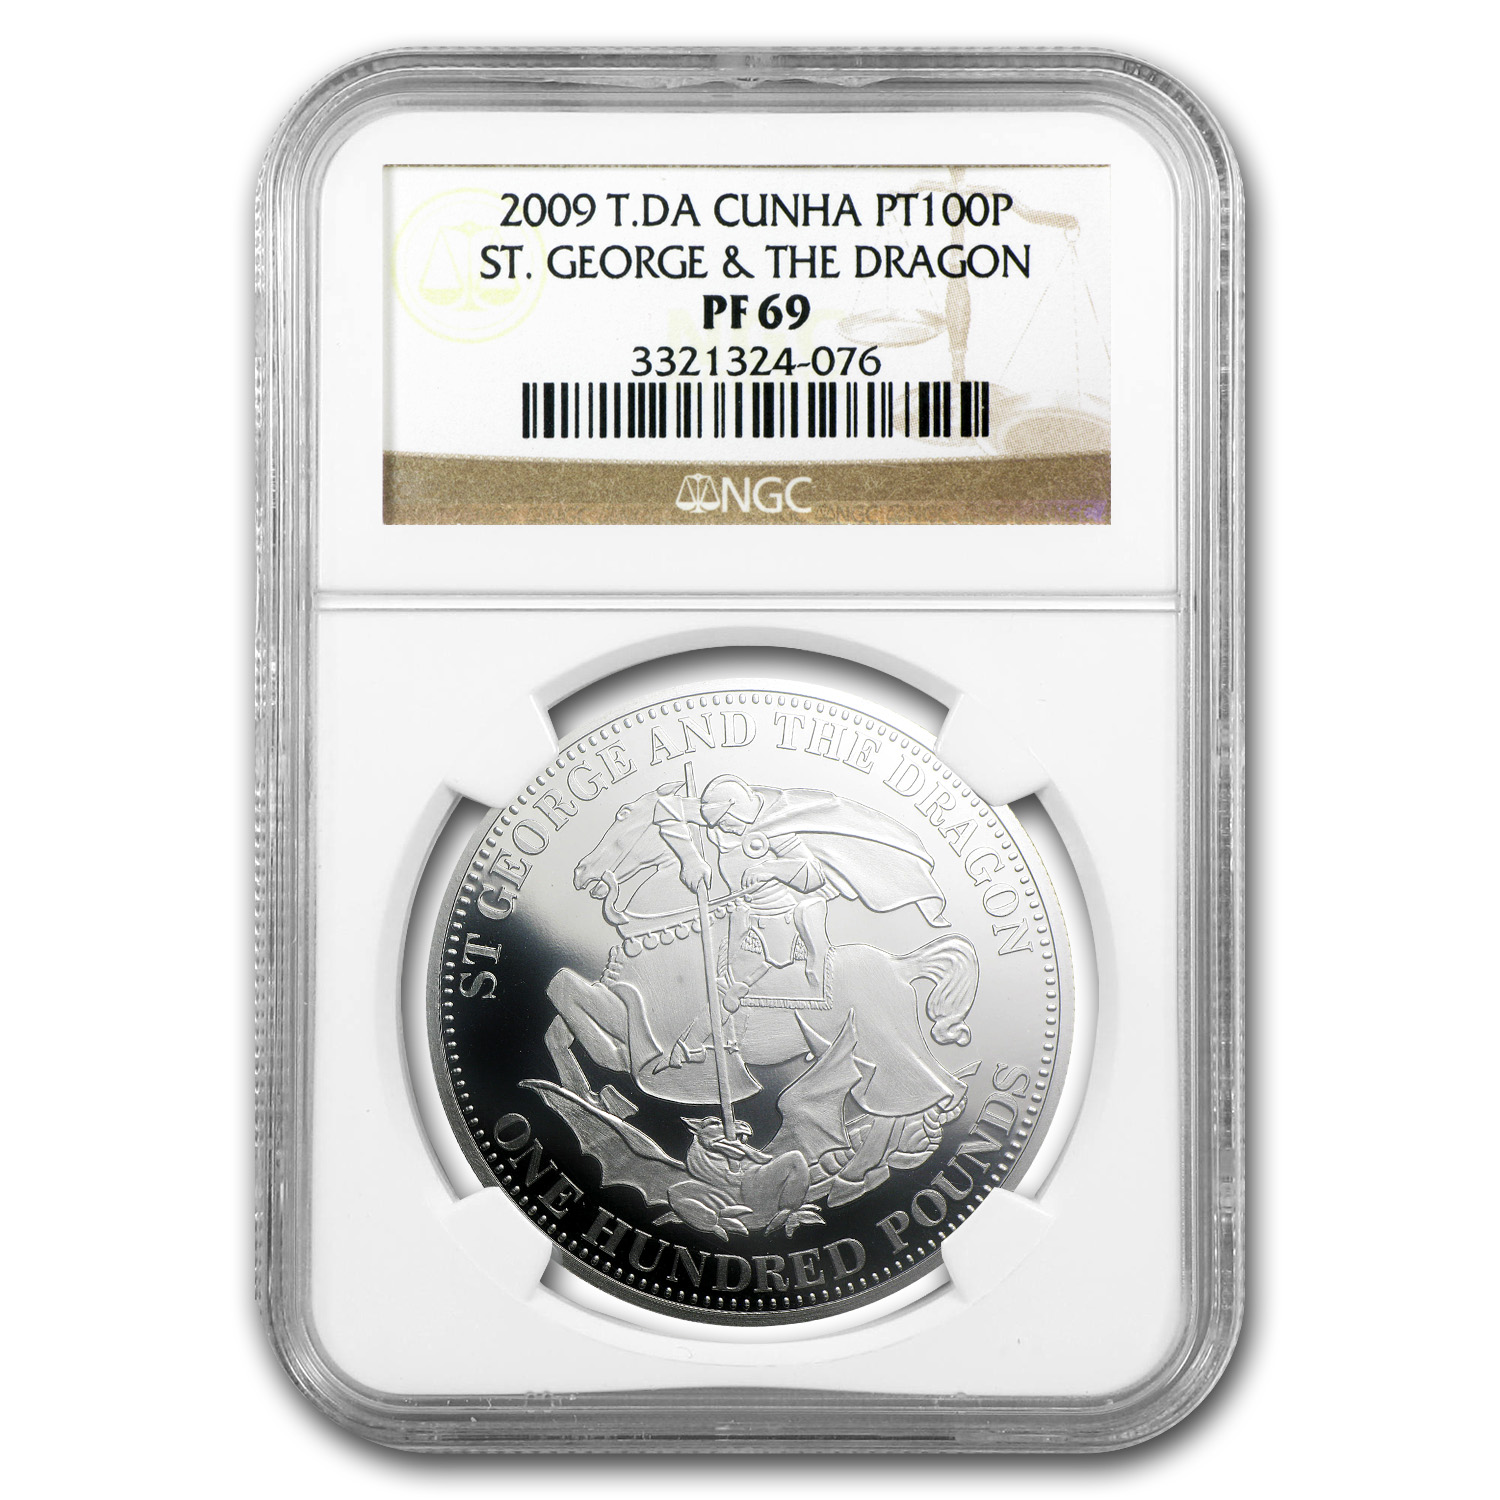 2009 1 oz T.DA Cunha £100 St. George & The Dragon PF-69 NGC